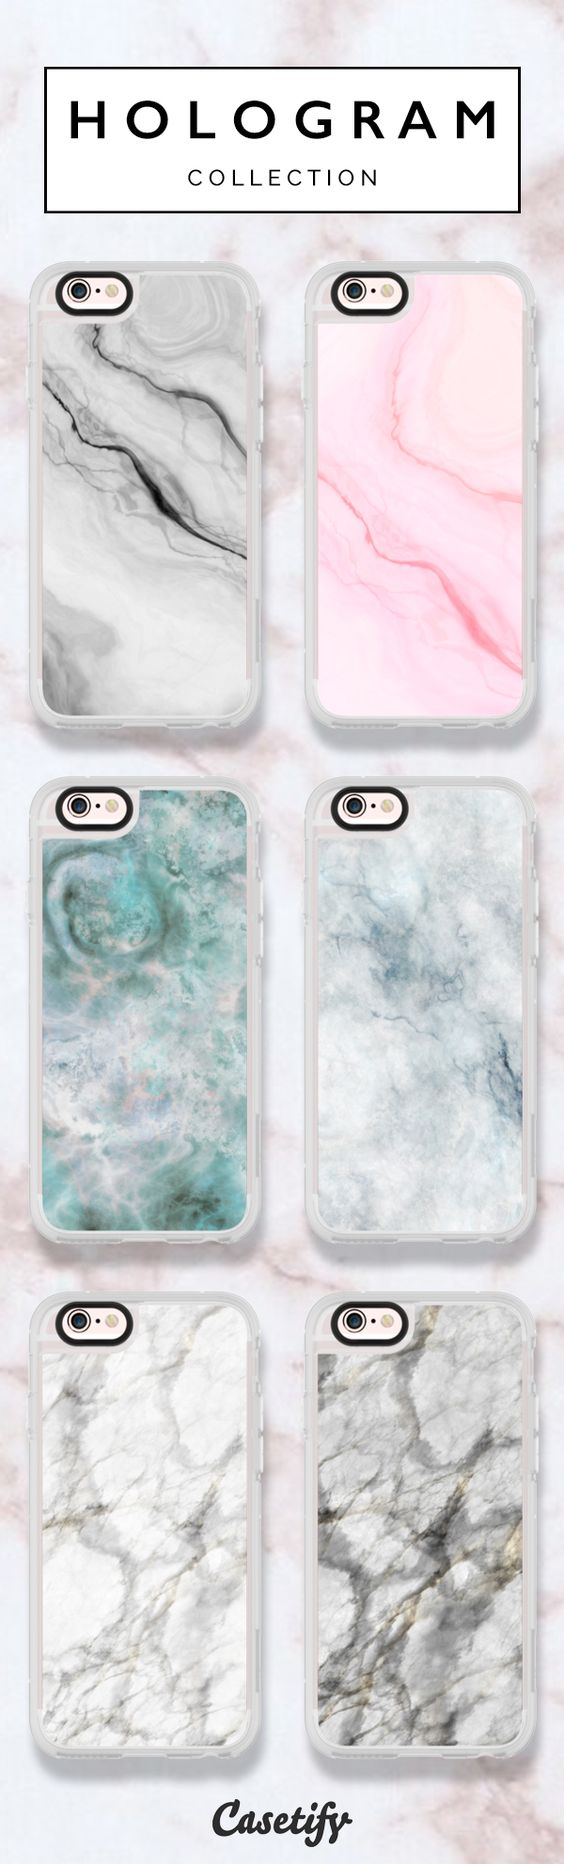 6 most popular marble iPhone 6 protective phone cases Click through to see more marble iphone phone case ideas >>> https://www.casetify.com/hologram/collection @casetify